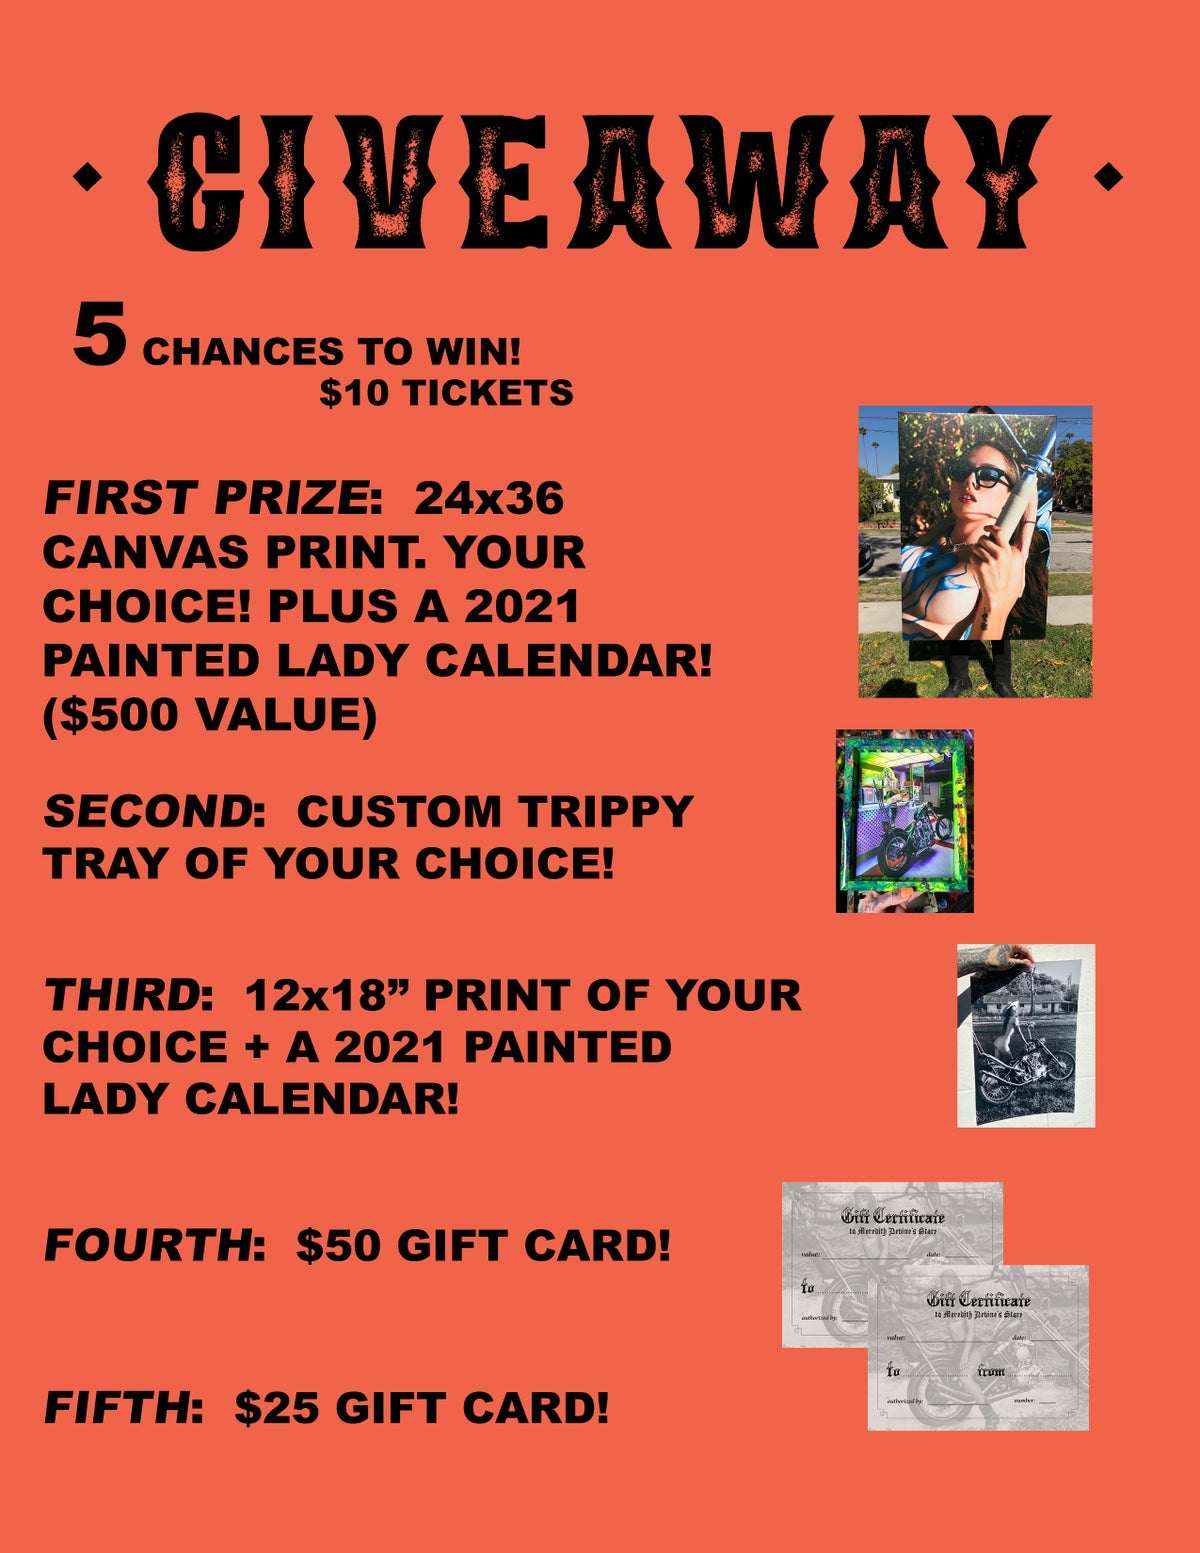 Image of FEBRUARY $10 GIVEAWAY <3 TICKET! 5 CHANCES TO WIN!